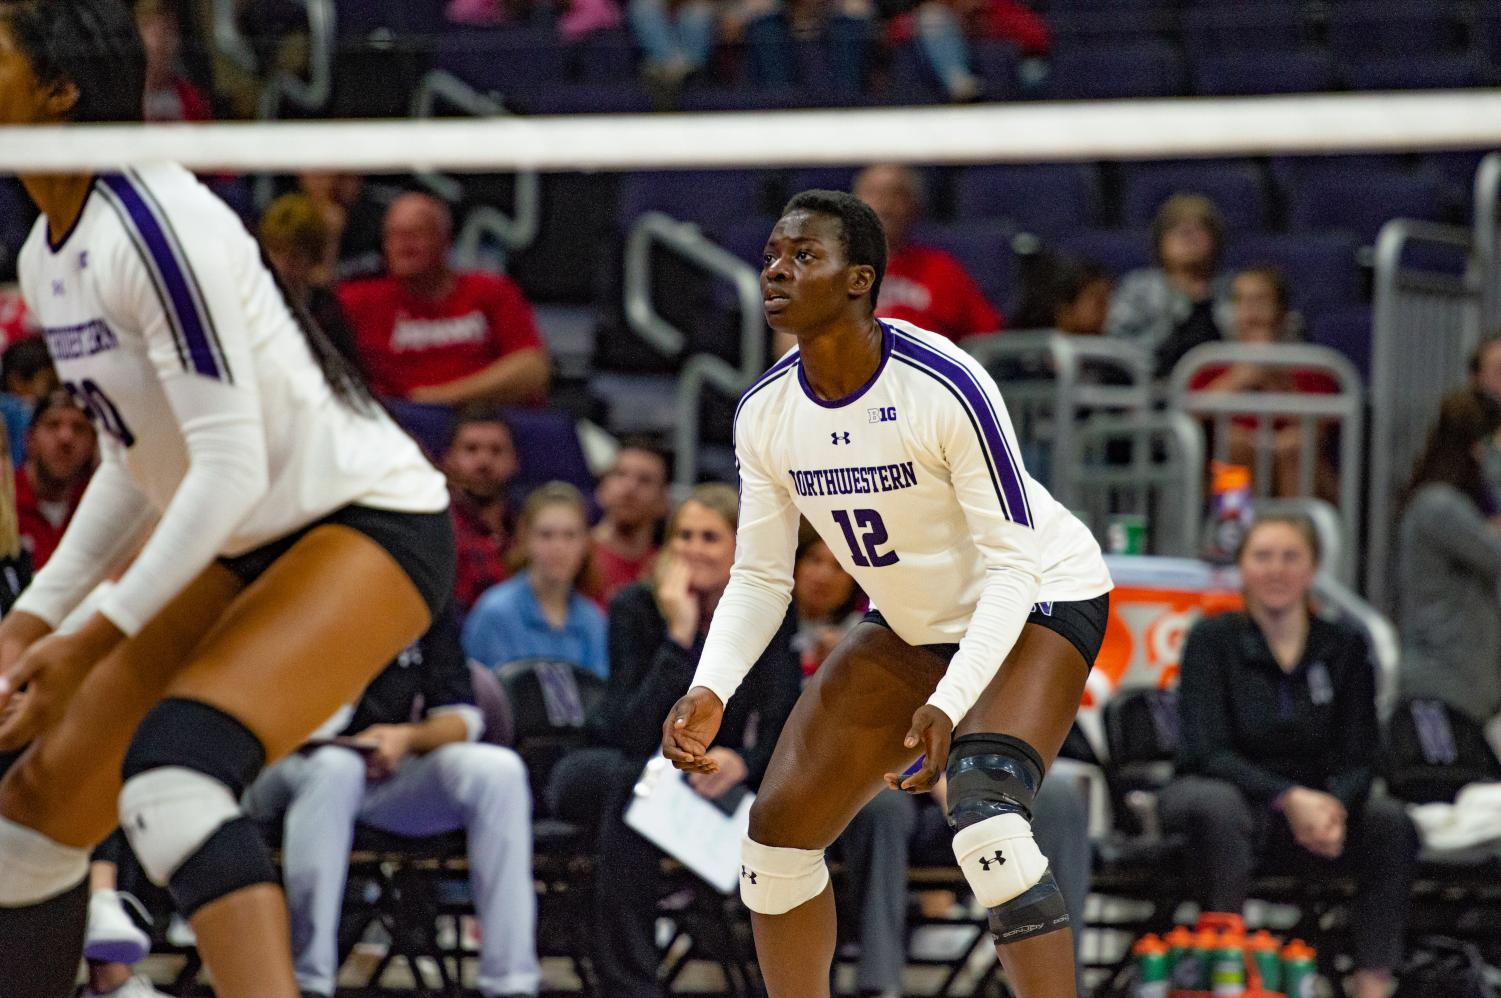 Temi Thomas-Ailara prepares to receive a serve. The freshman outside hitter returned after missing the last couple of games.